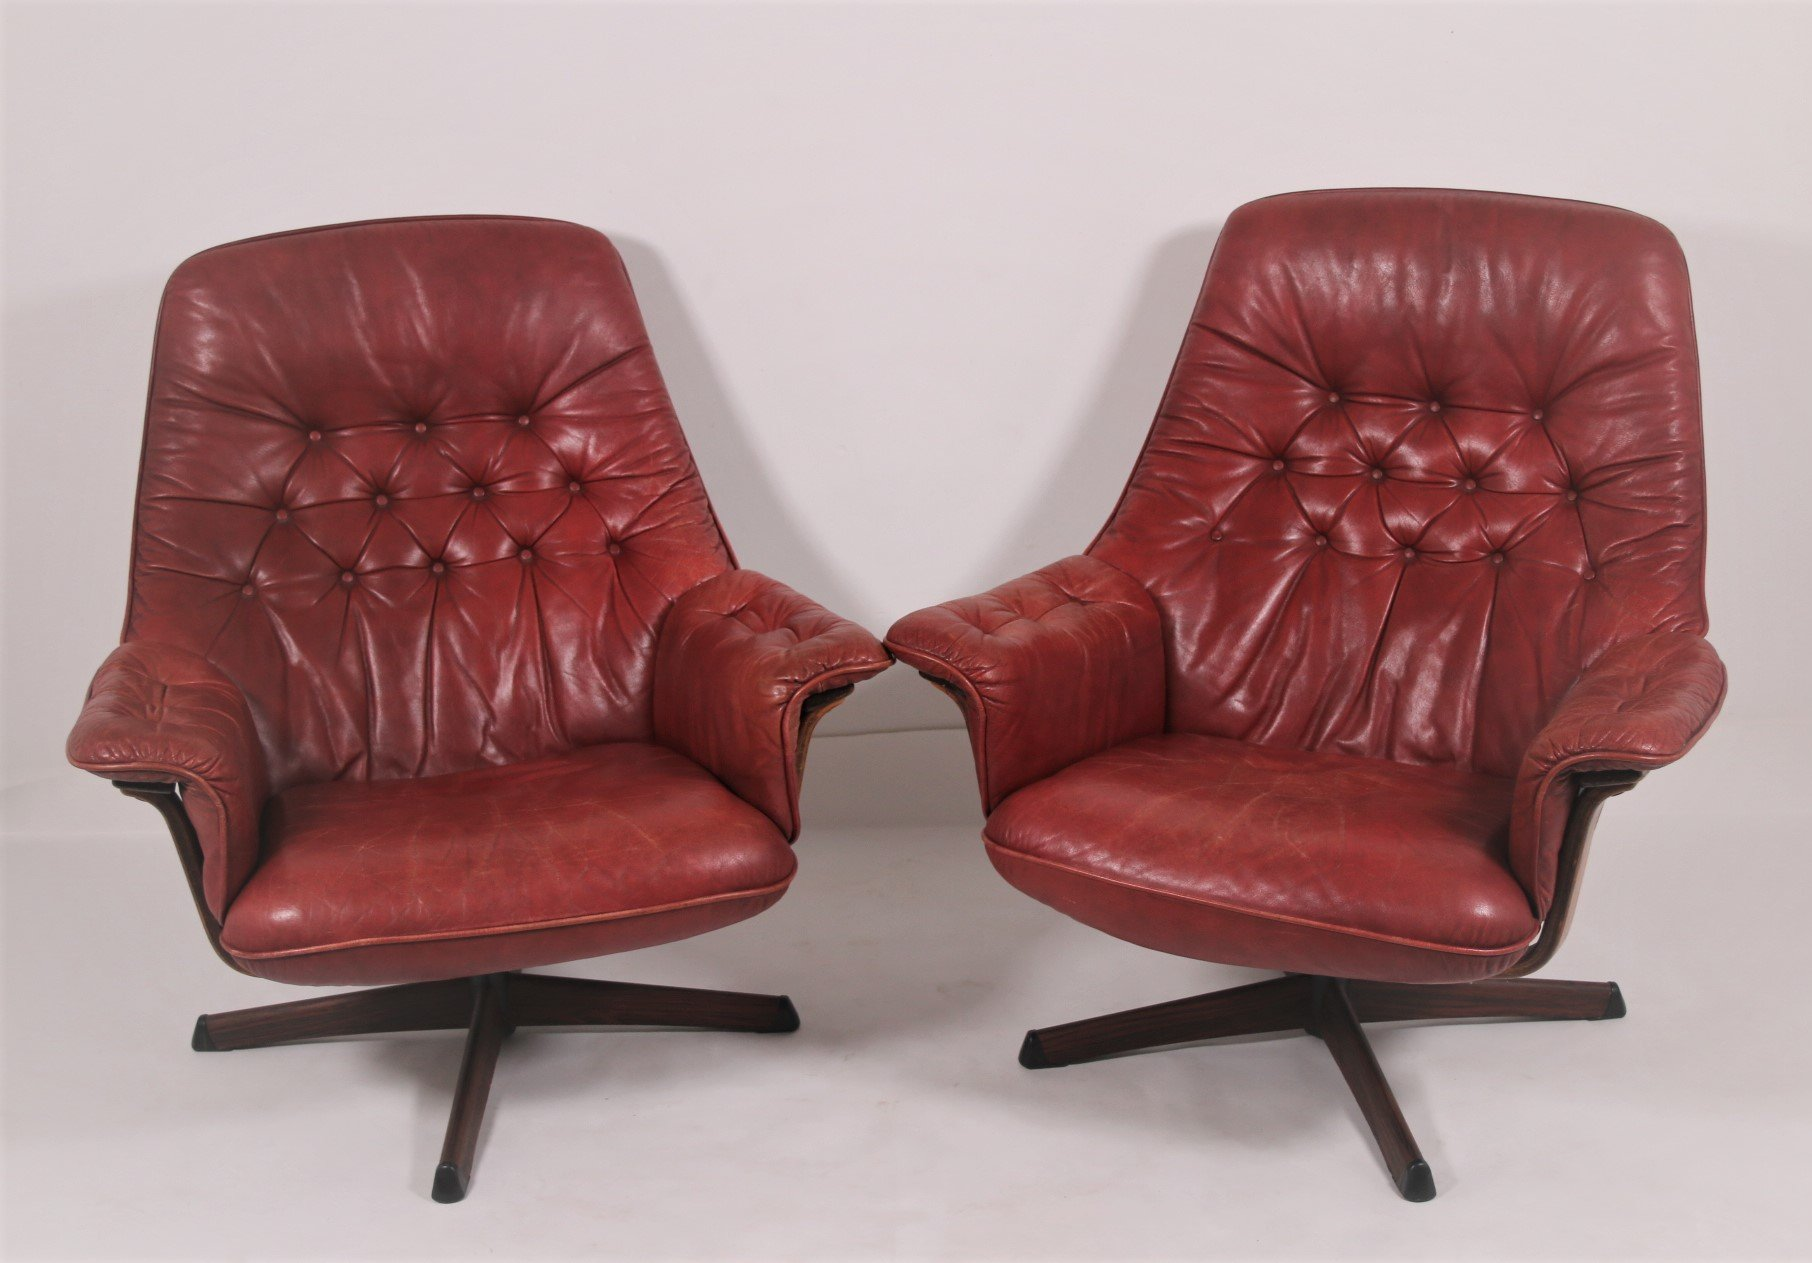 Pair Of Vintage Red Leather Swivel Armchairs With Wooden Accents 1960s 139872